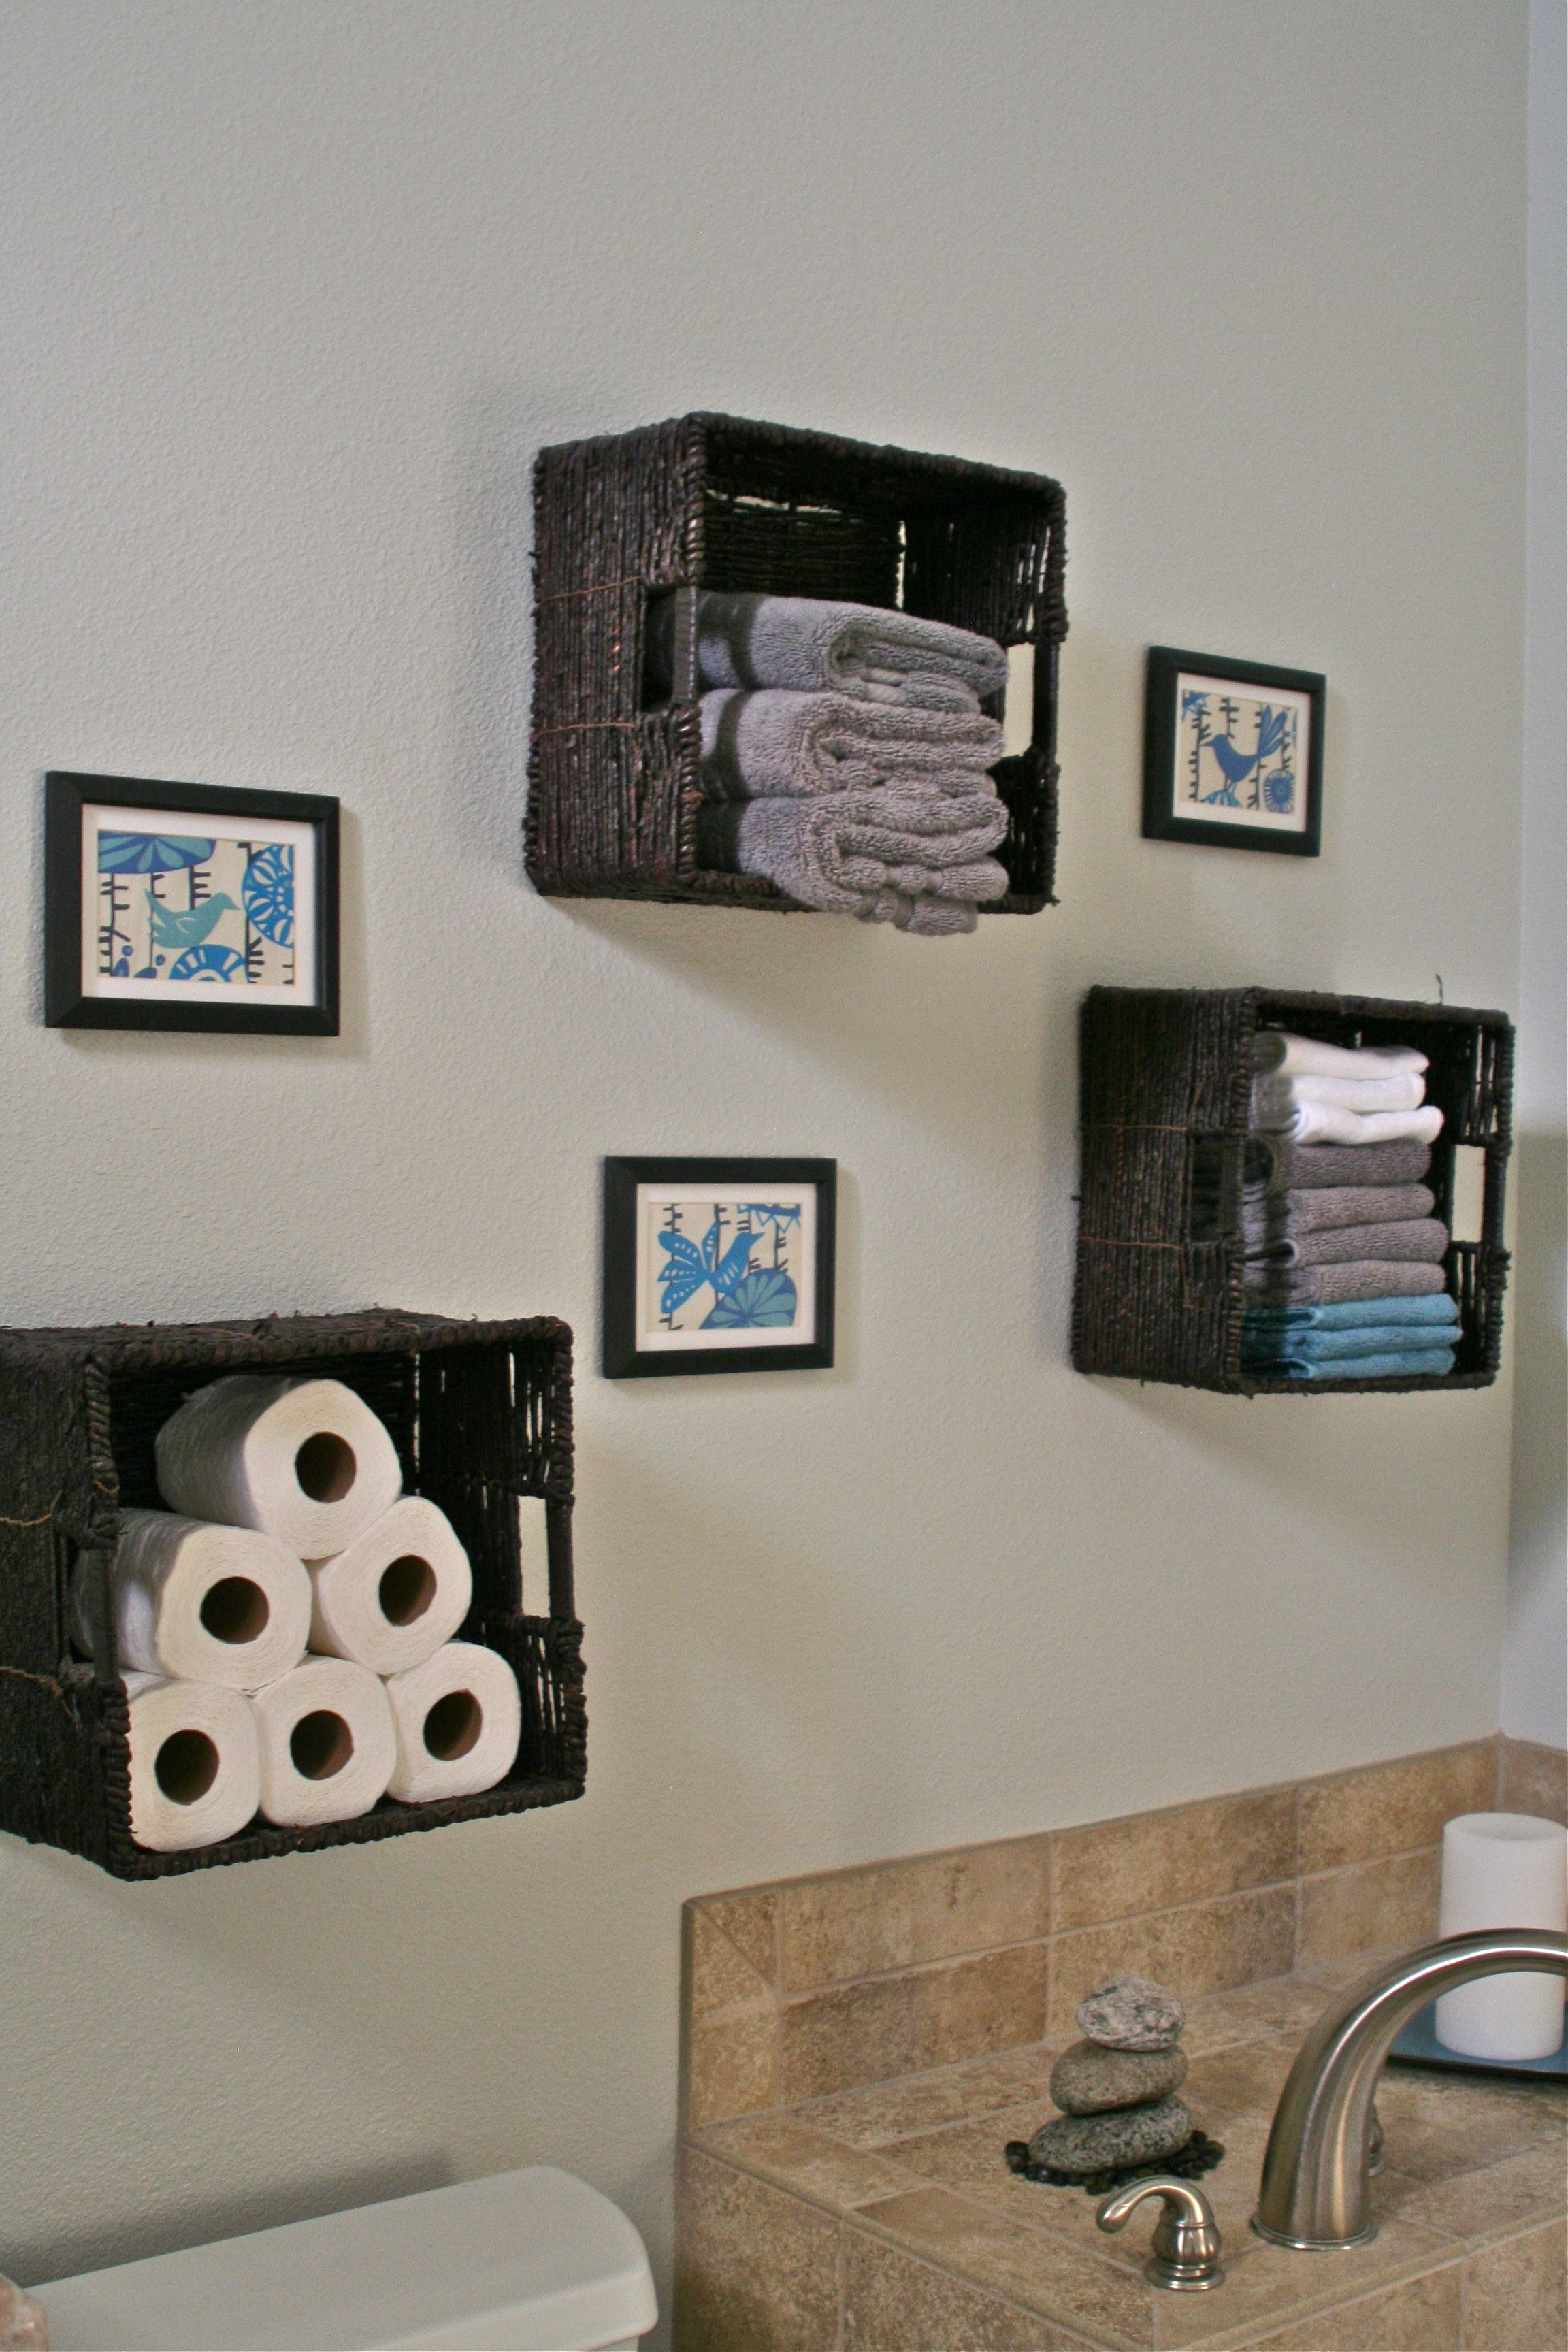 Bathroom Storage Baskets For Towels Toilet Paper Etc Love throughout size 2304 X 3456